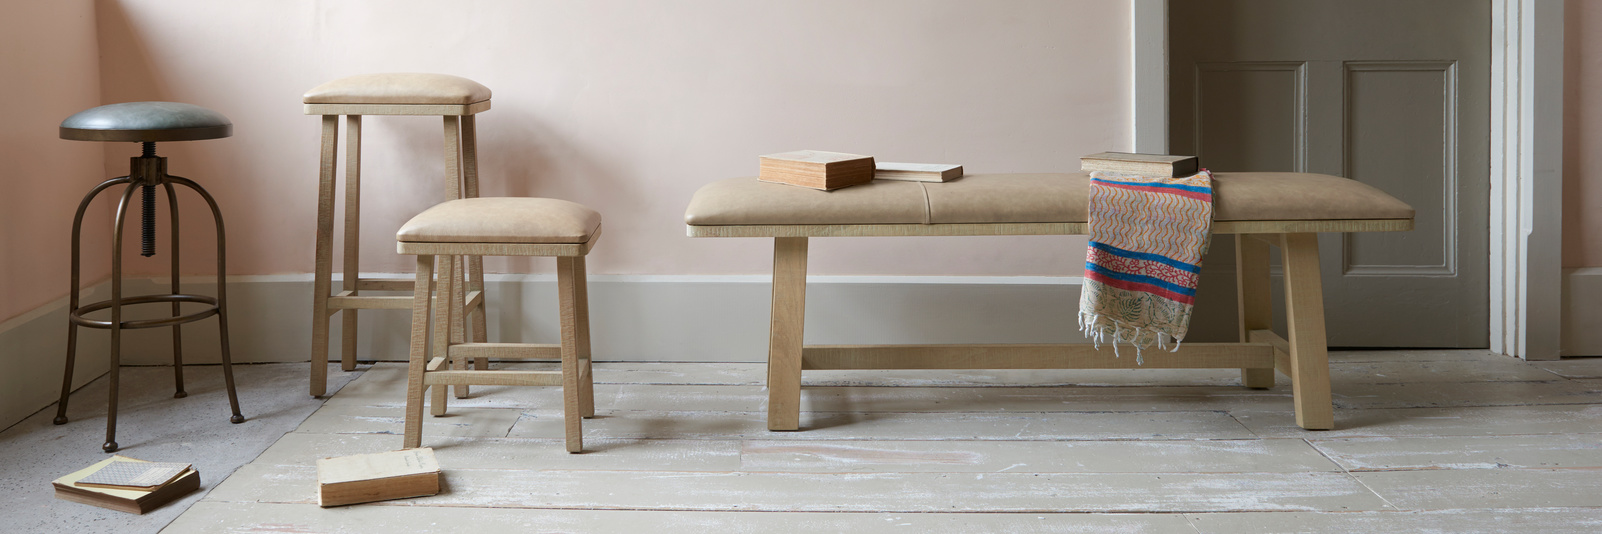 Kitchen chairs, benches and stools range